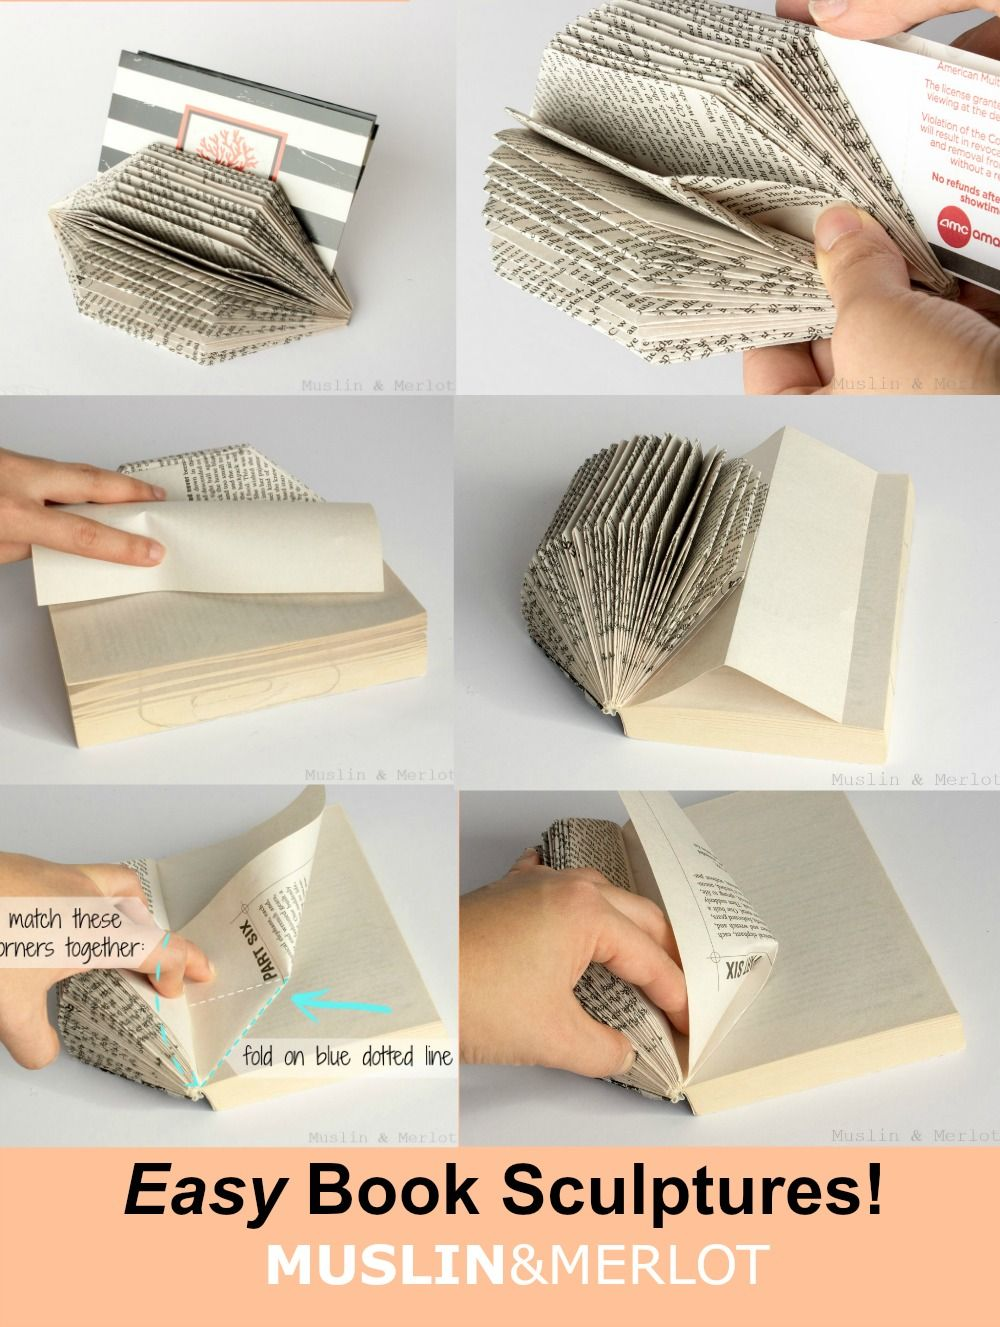 Easy Gem Book Sculpture! #artdupliagedelivres